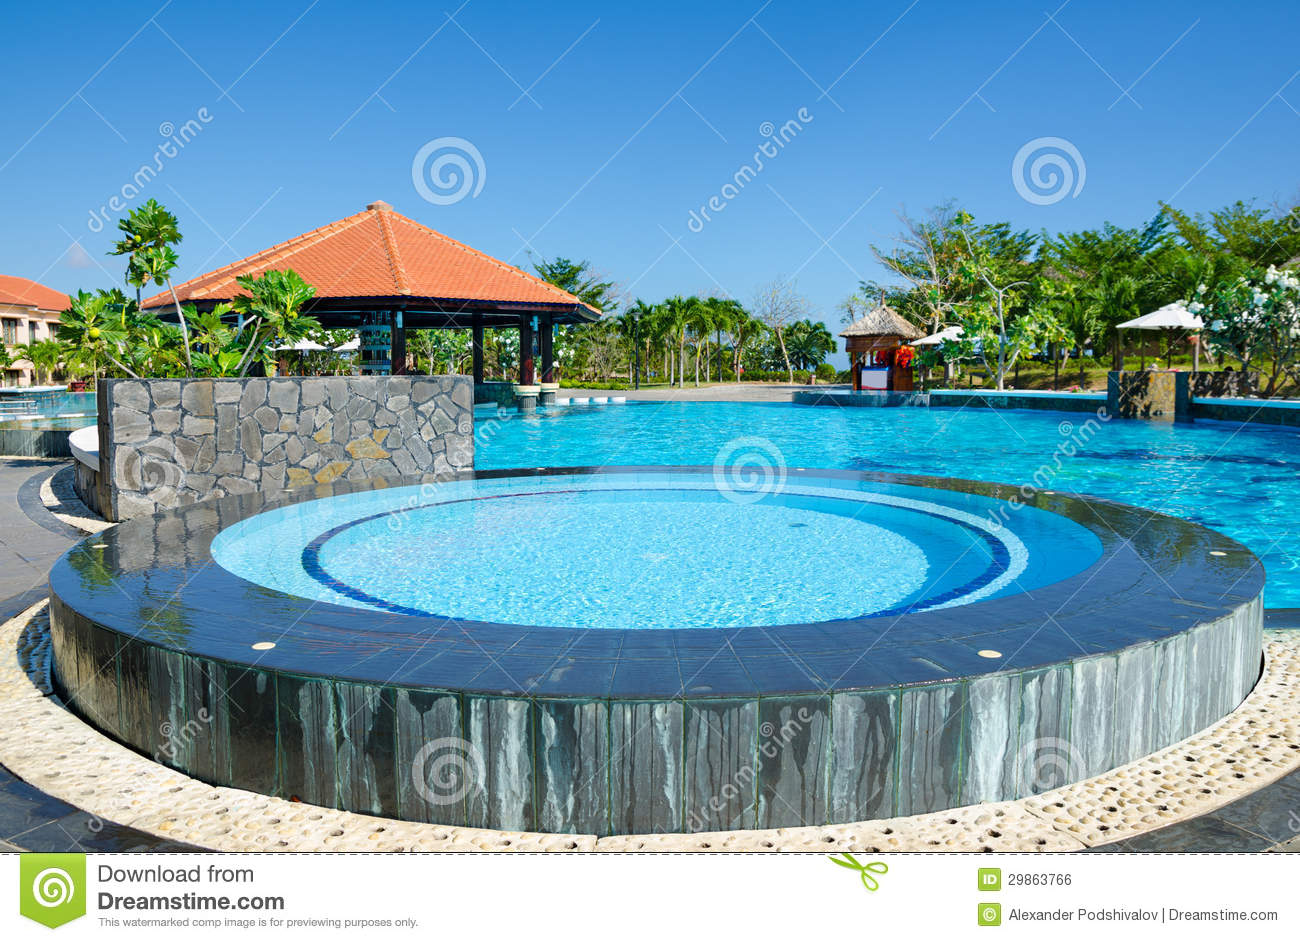 Swimming pool near hotel royalty free stock image image 29863766 for Swimming pools open today near me